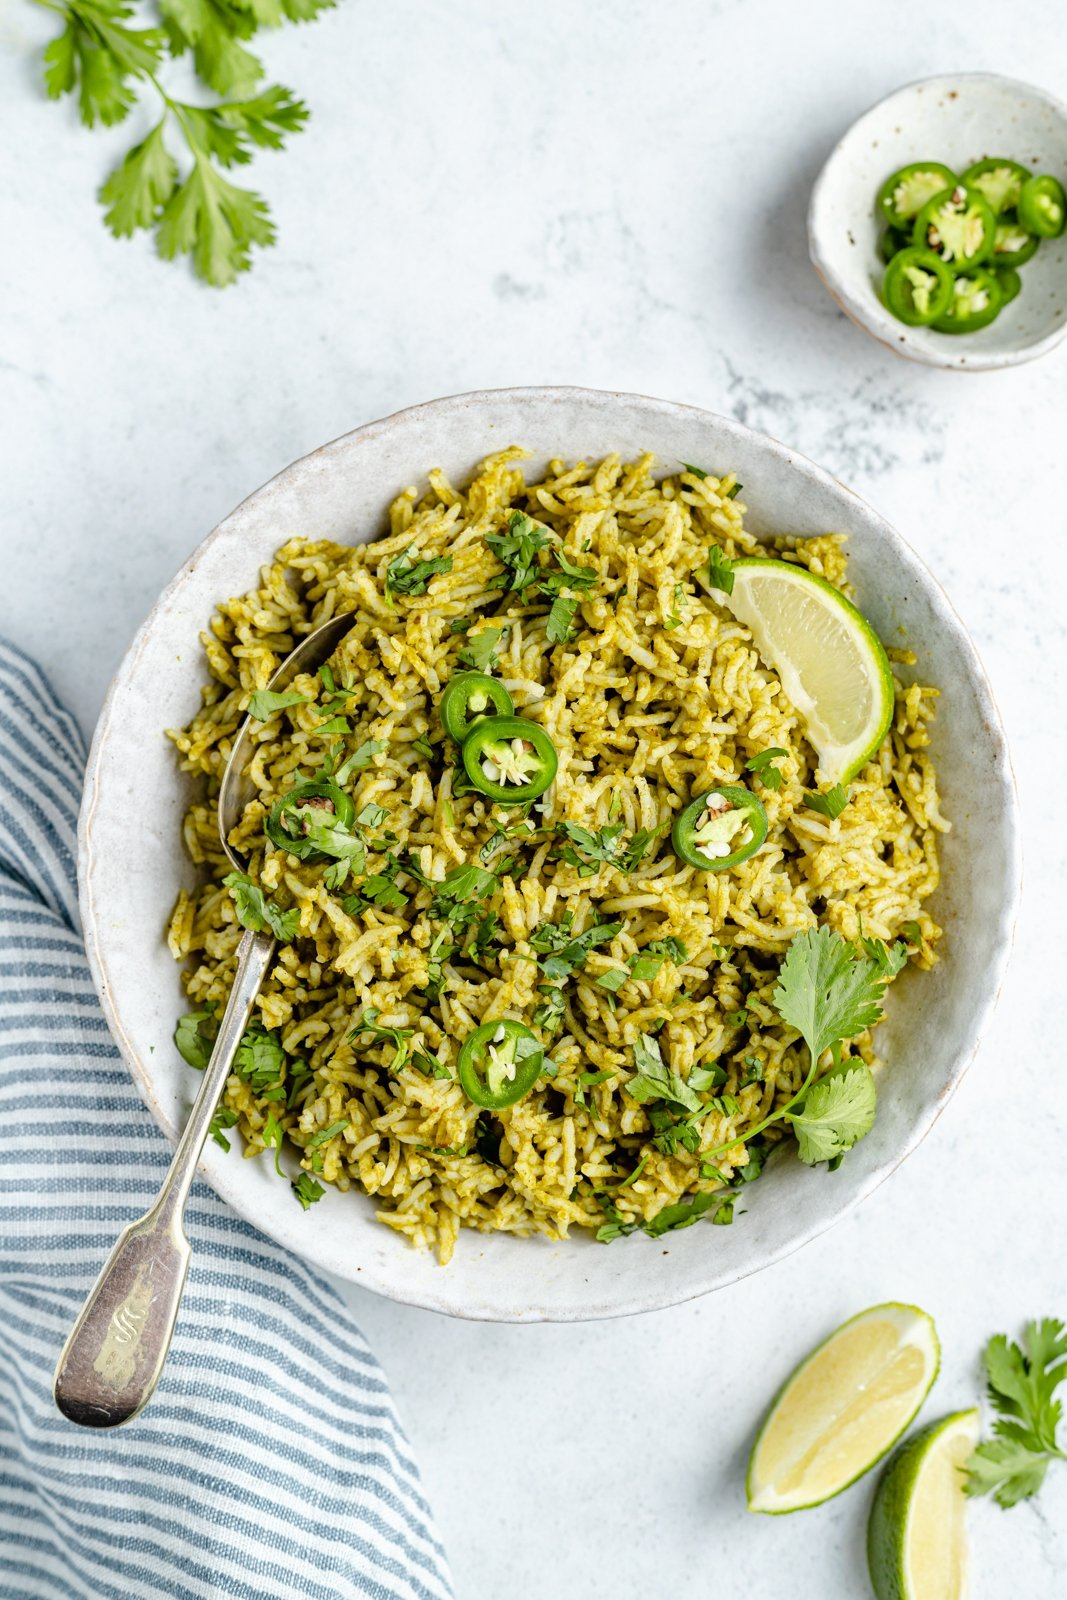 arroz verde in a bowl with a spoon